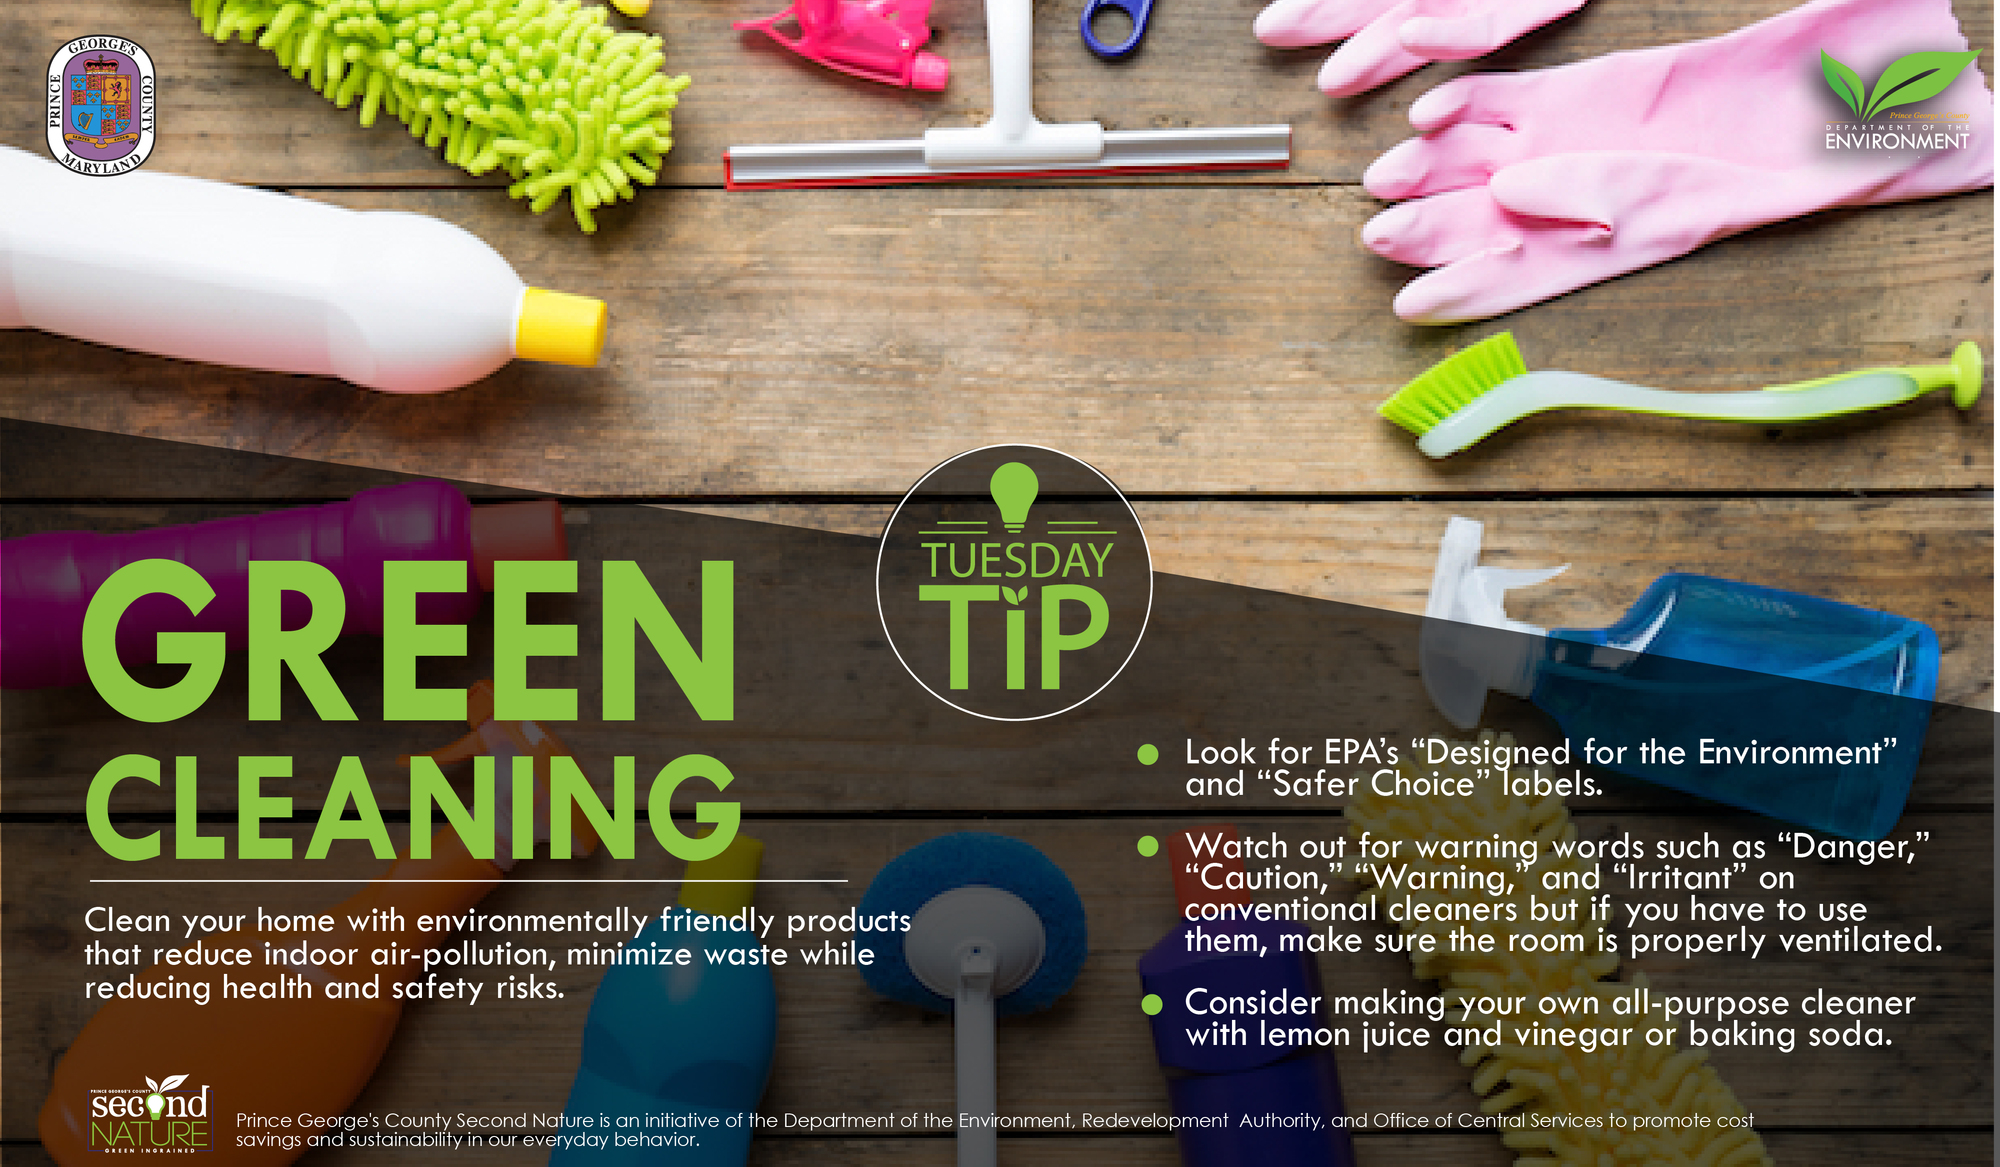 Tues Tip 3.12.19 green cleaning